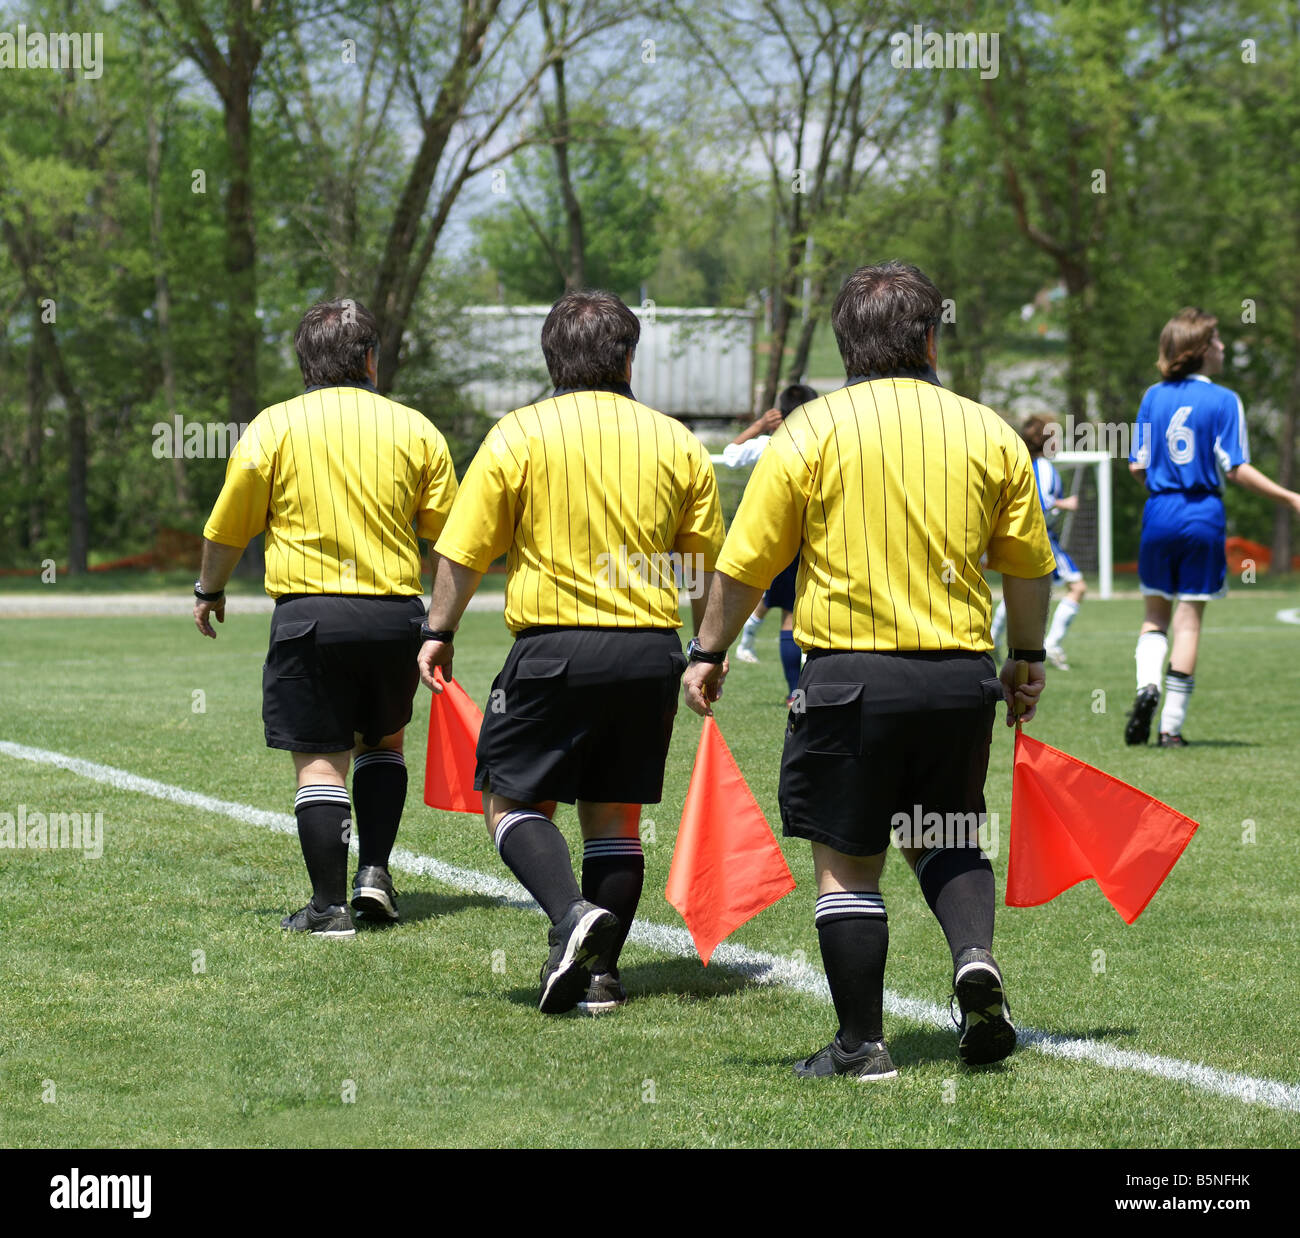 Triplet soccer side referee with red flag. Composition with three positions of the side ref, perfectly blended into - Stock Image